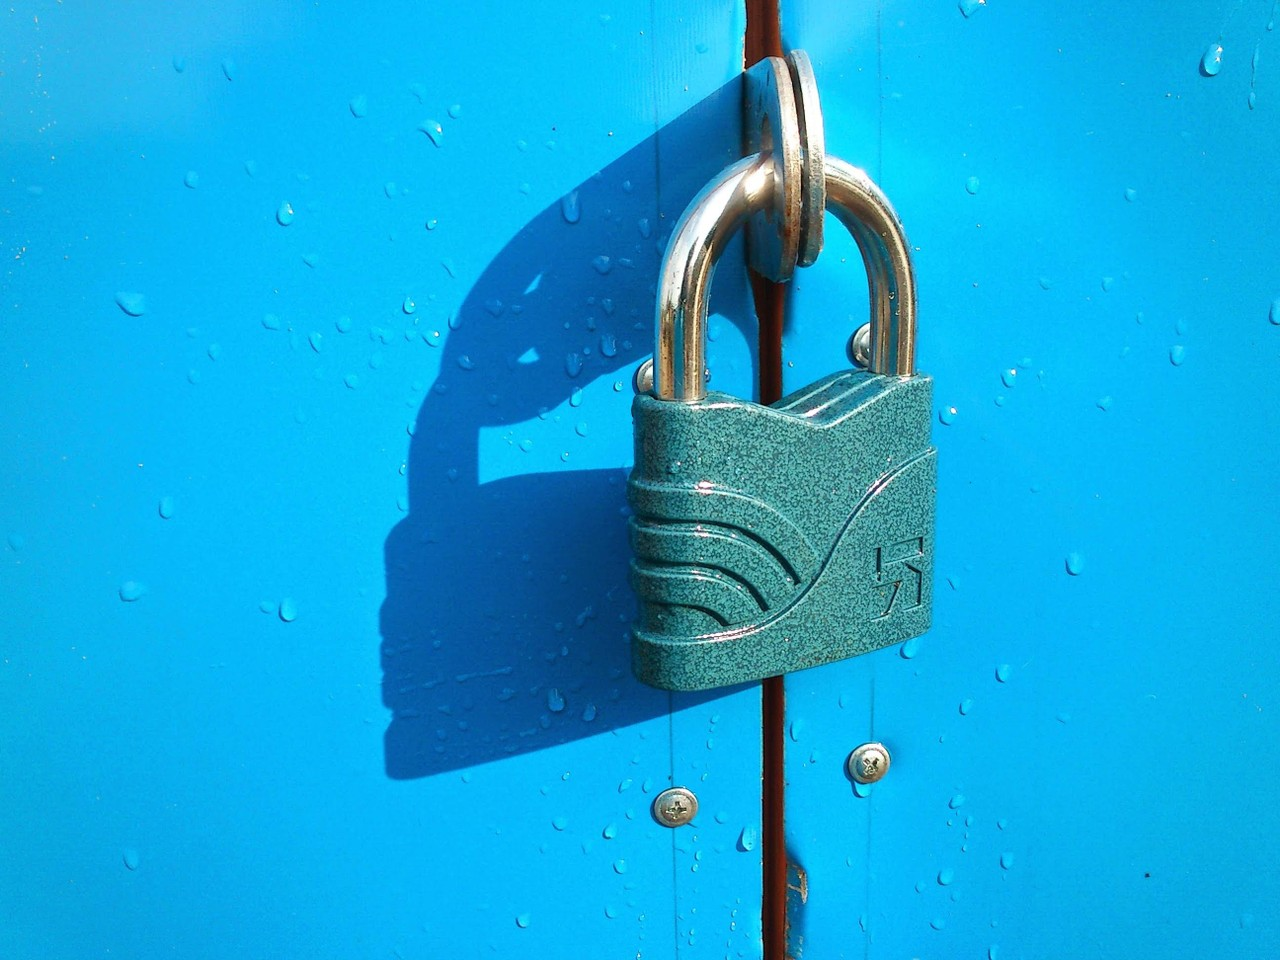 How to Protect Your WordPress Website With HTTPS in 5 Simple Steps